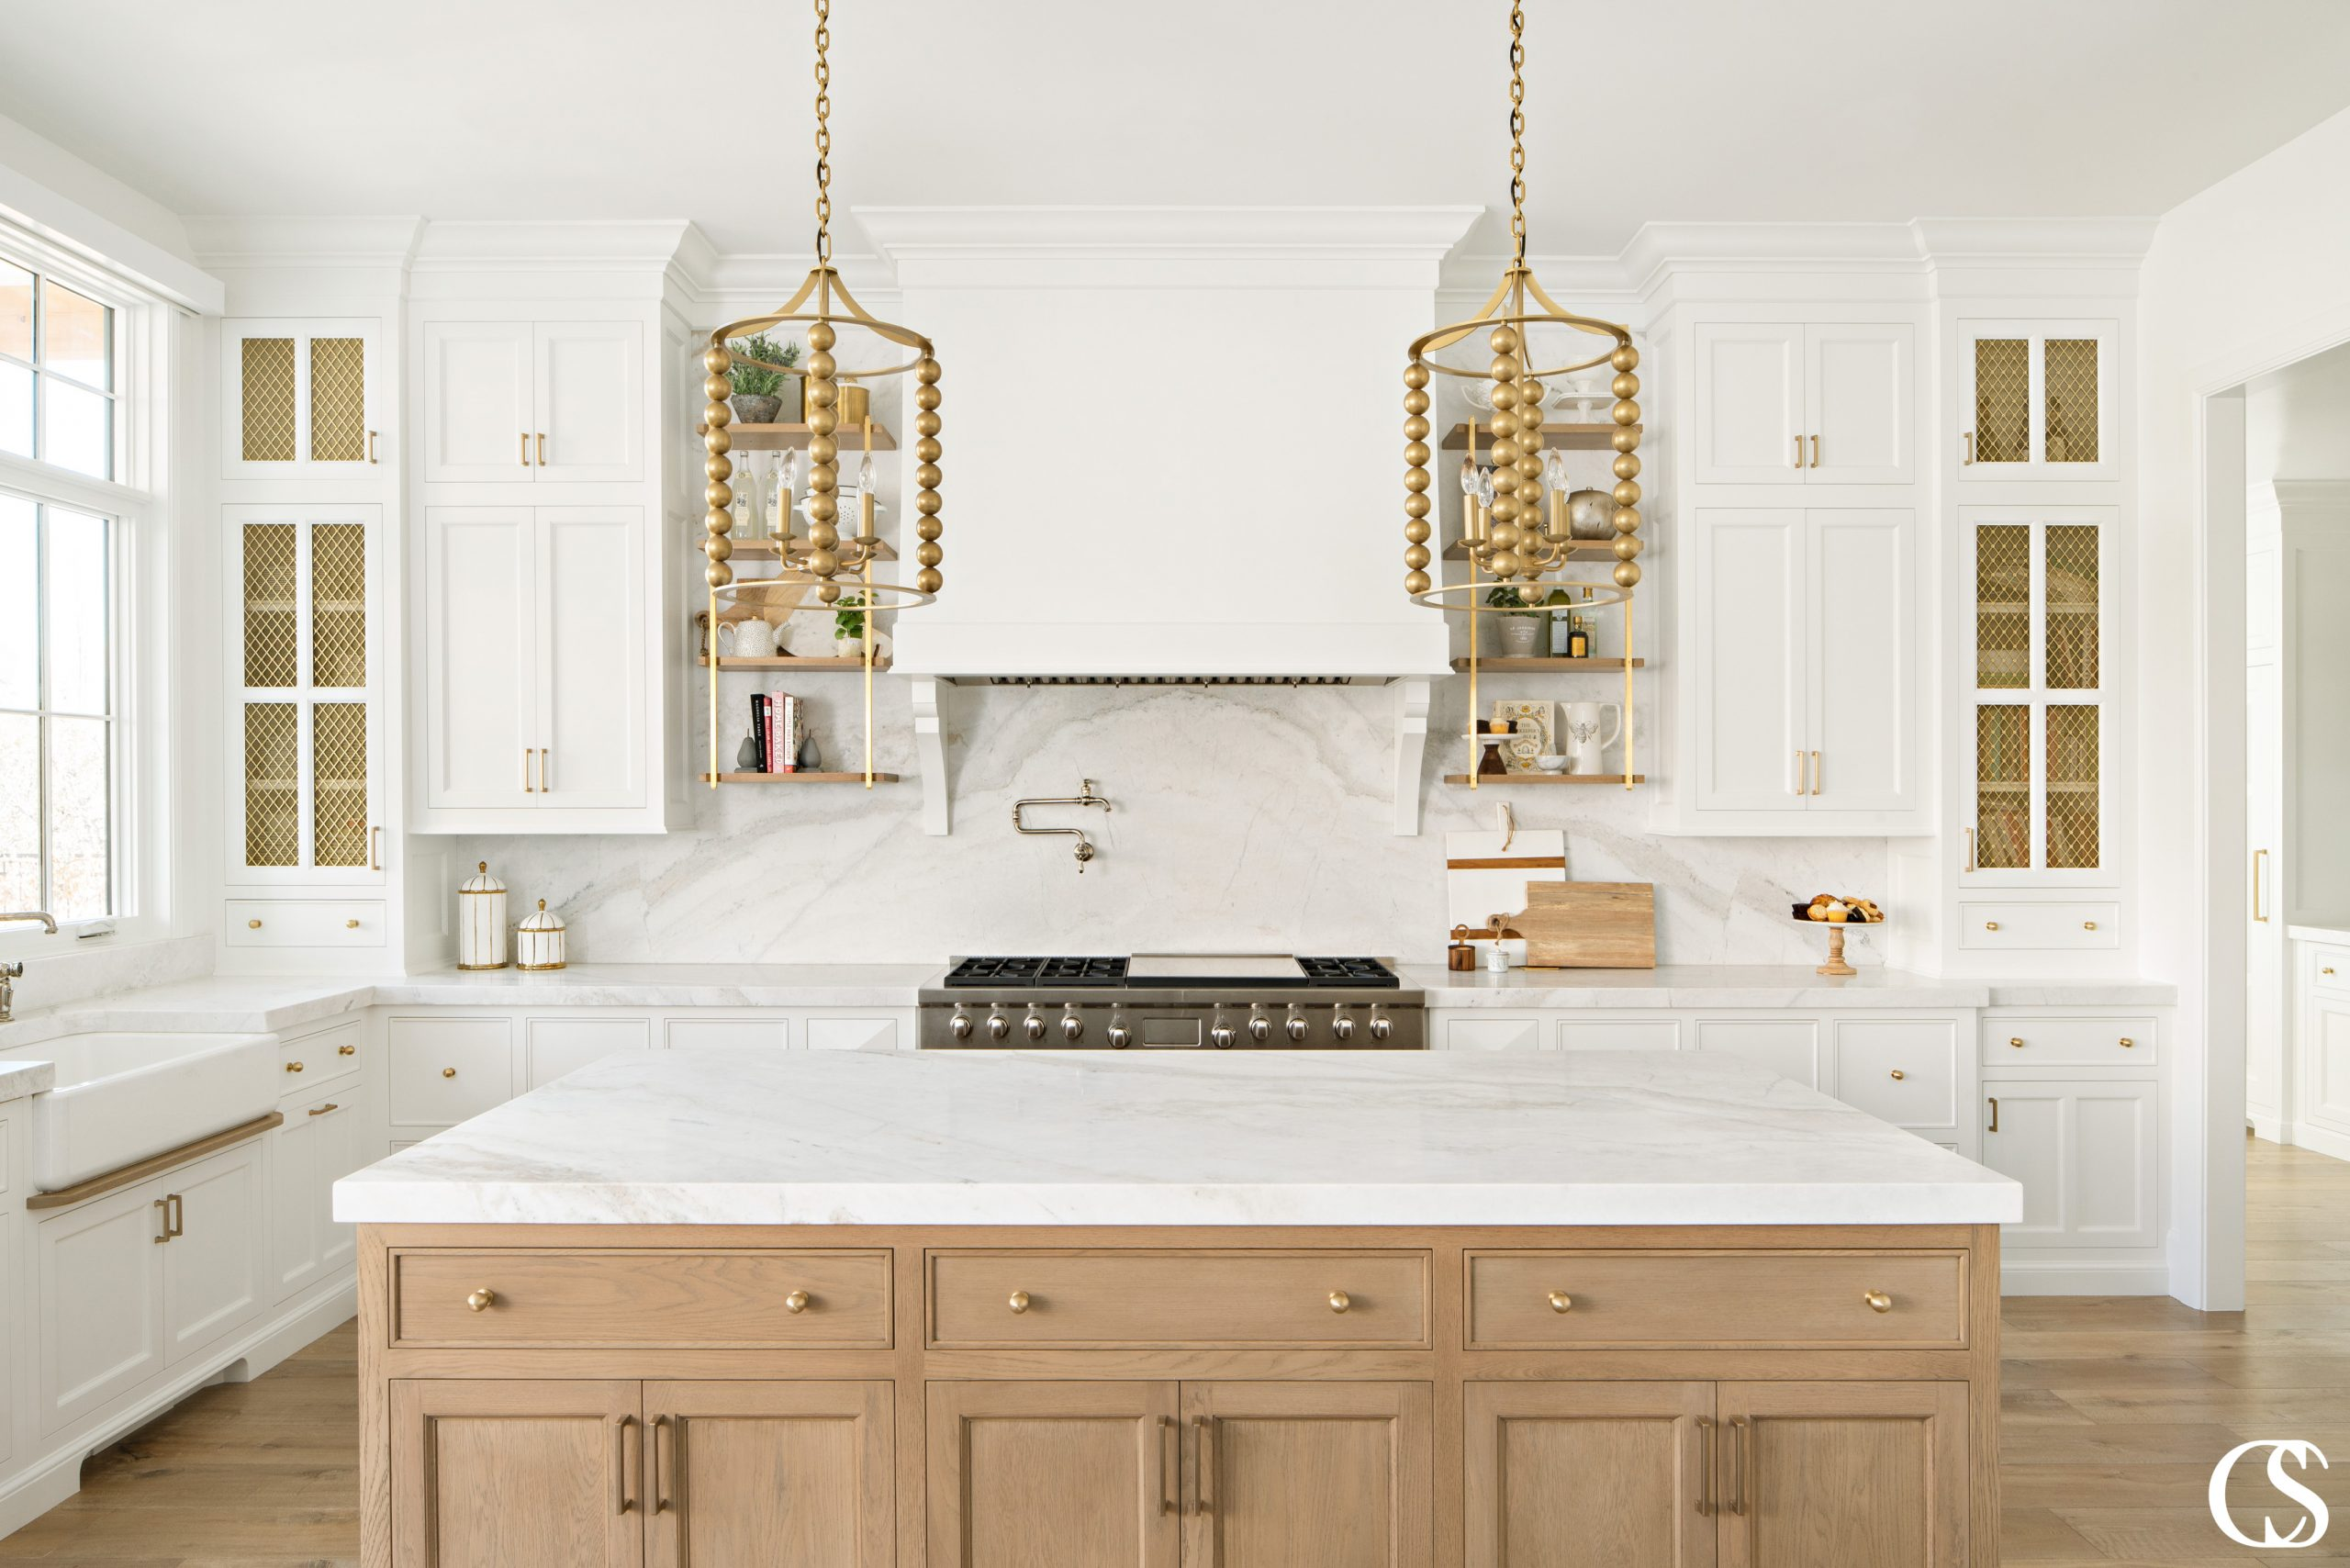 See how the wood island also uses beaded inset drawers and shaker cabinet doors to echo the look in the rest of the kitchen? It's those kind of consistencies that make the best cabinets for kitchen design a harmonious success.